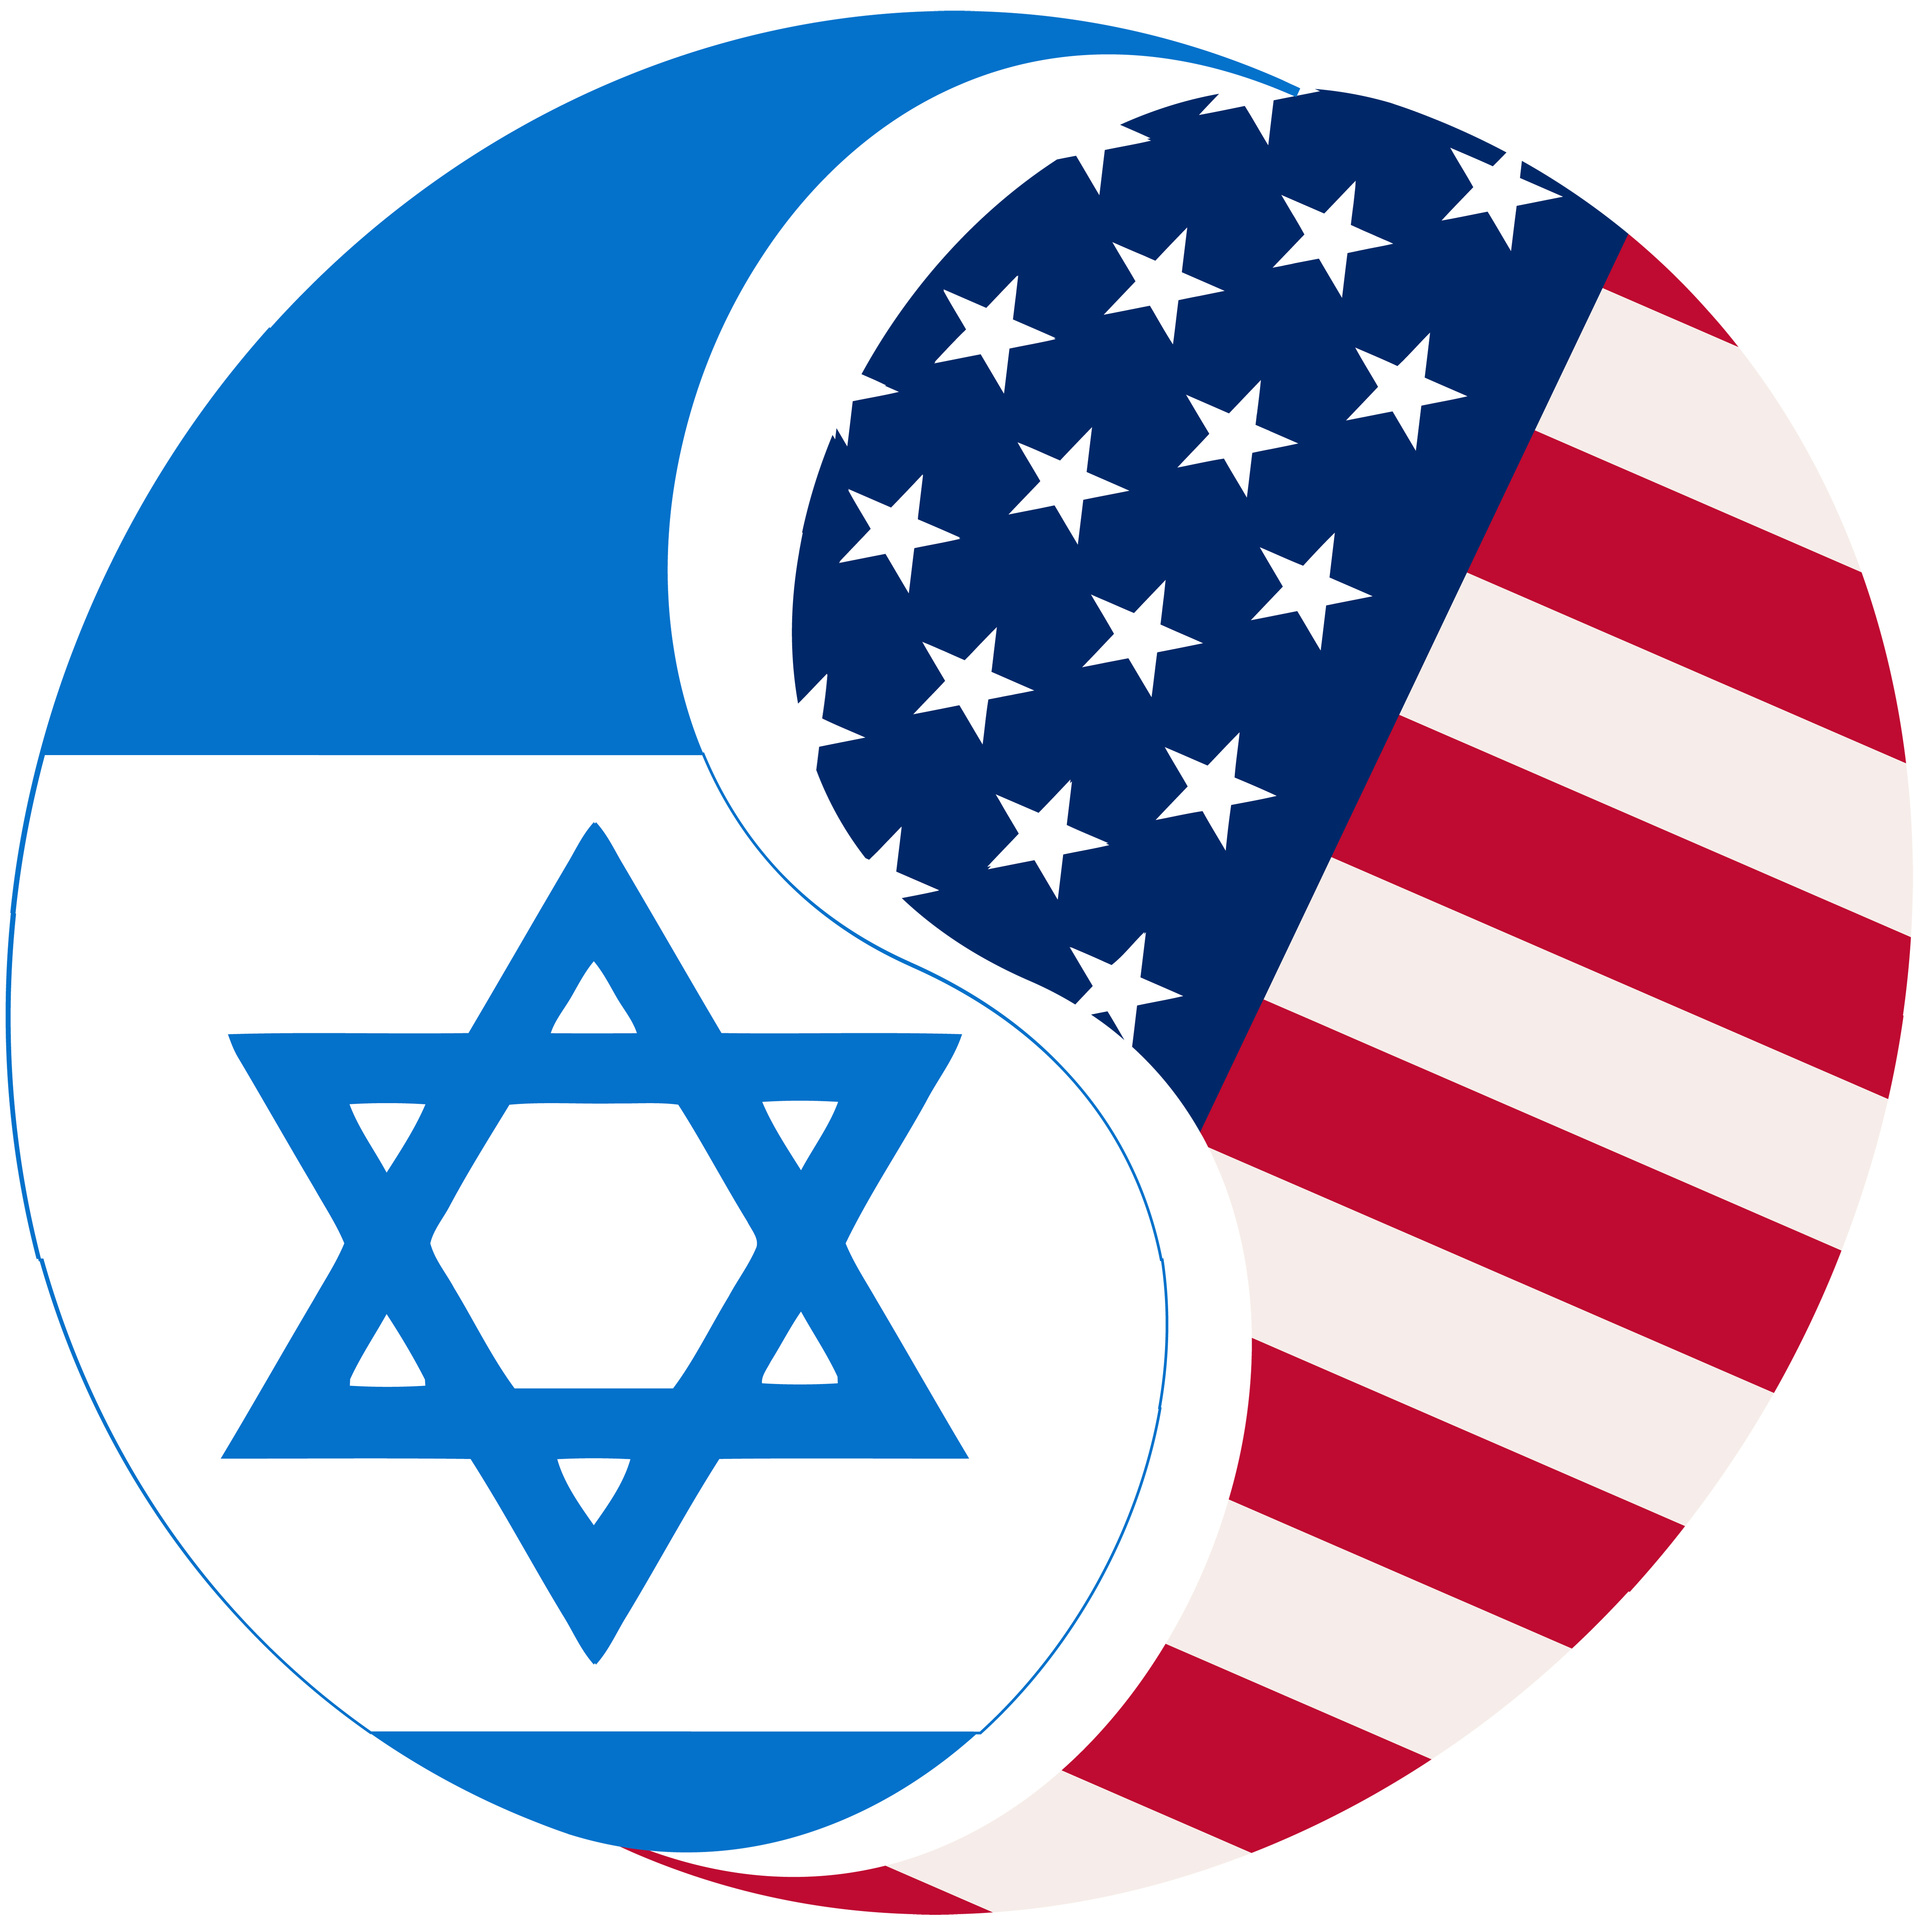 an overview of the relationship between the united states and israel Historical timeline: 1900-present period economic relations between israel and alongside the state of israel the united states ended years of.